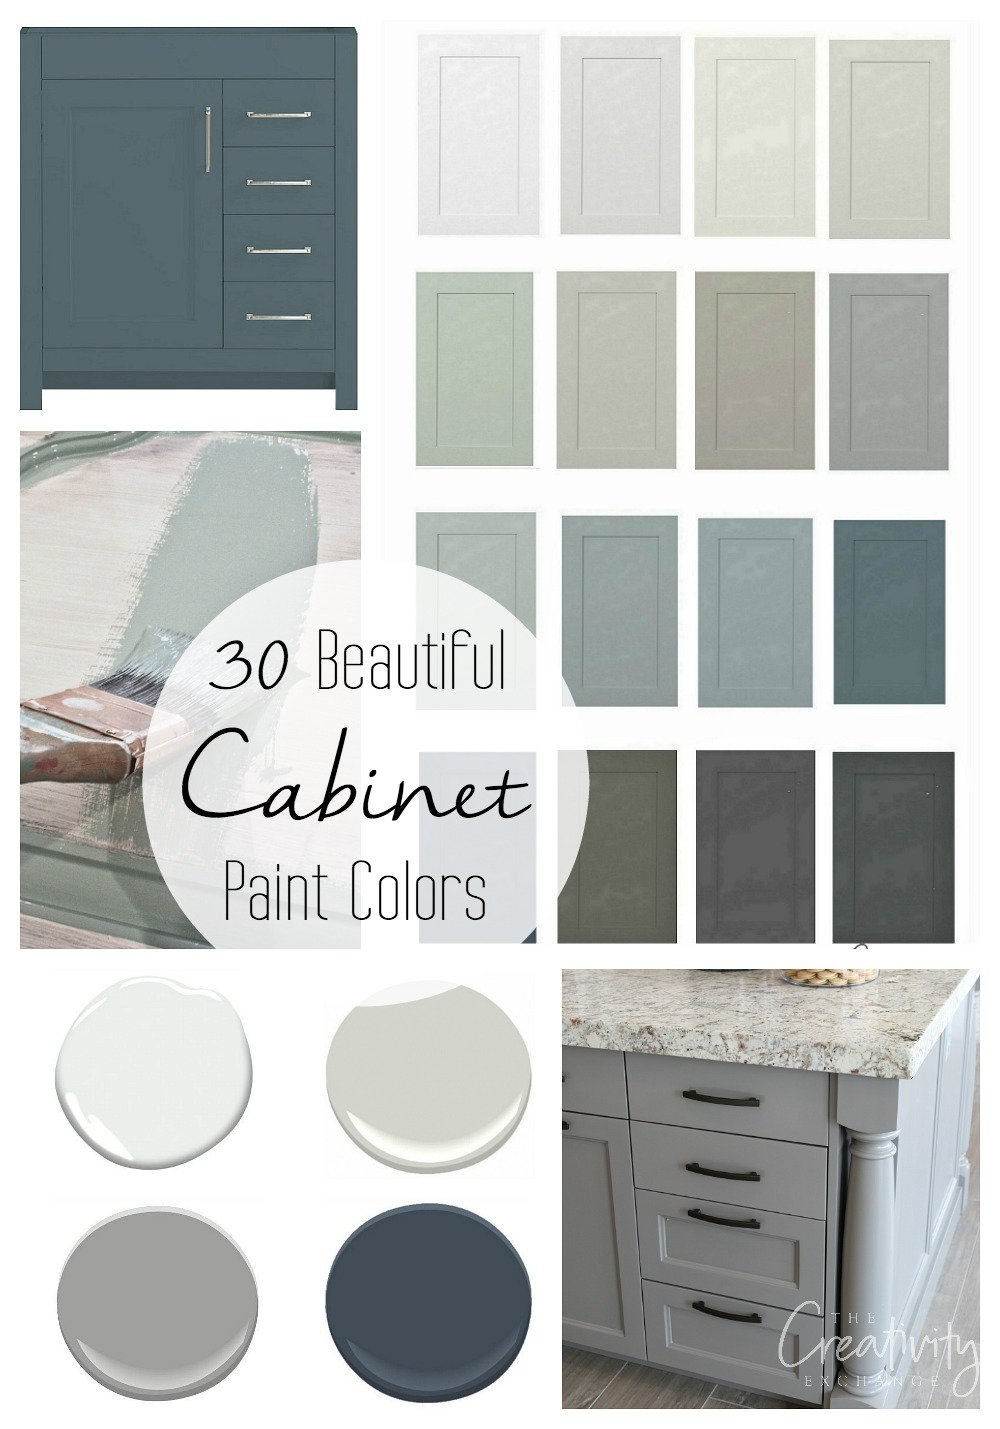 30 Beautiful Cabinet Paint Colors for Kitchen and Baths